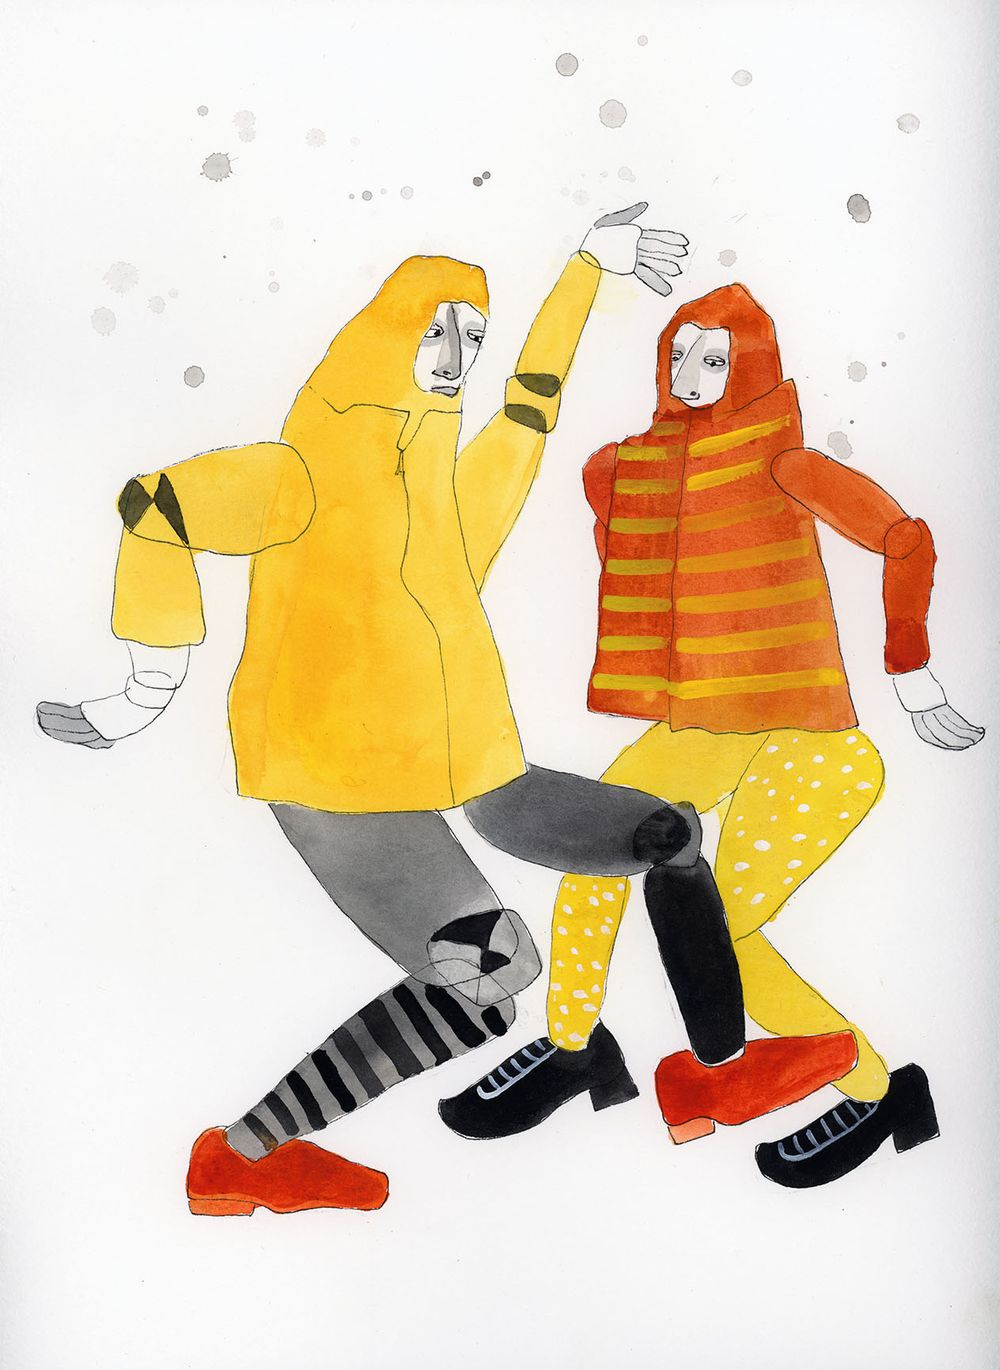 Two characters dancing